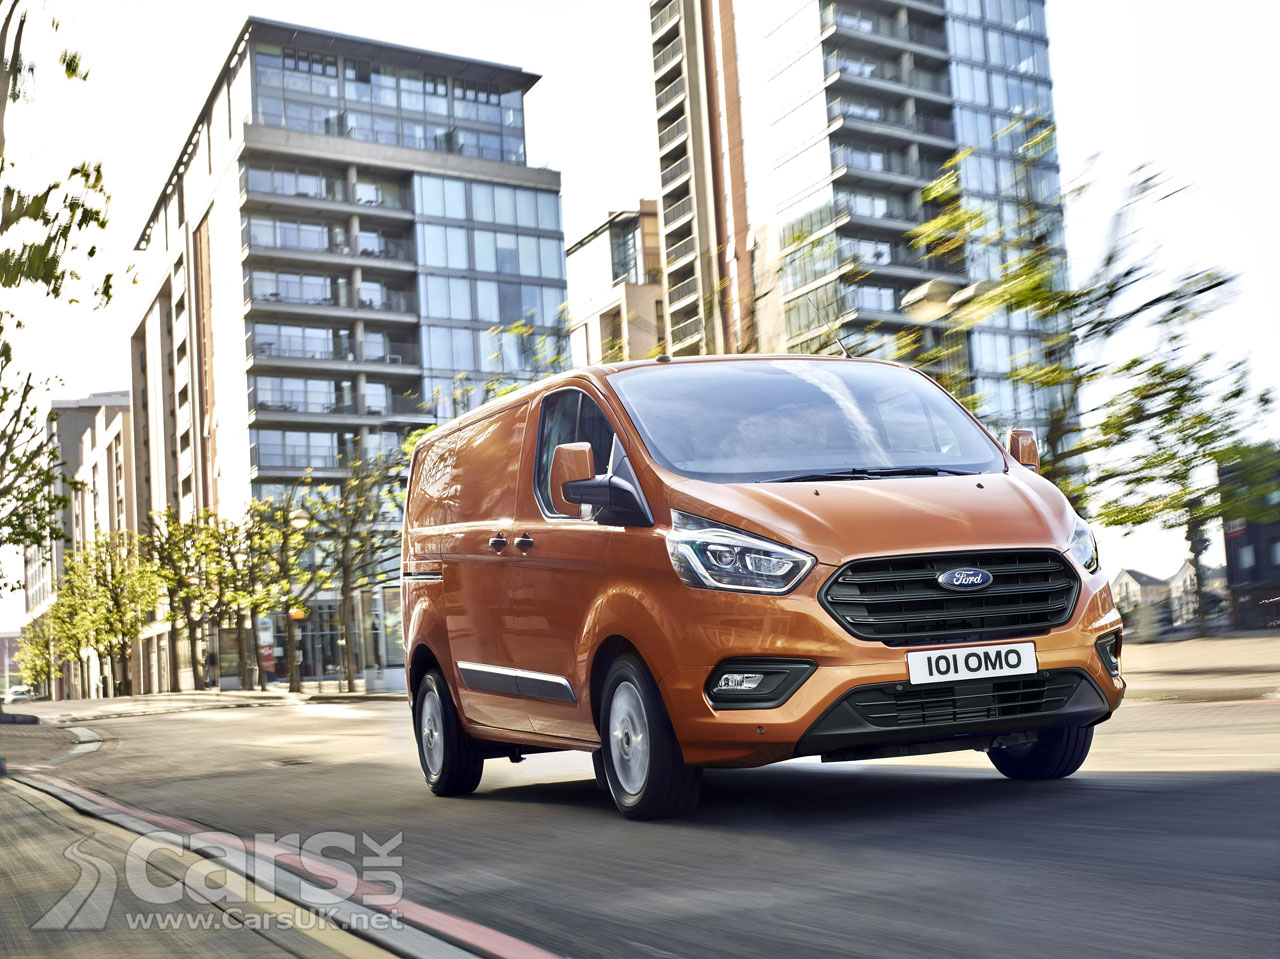 2018 ford transit custom revealed and there 39 s a plug in hybrid transit on the way too cars uk. Black Bedroom Furniture Sets. Home Design Ideas